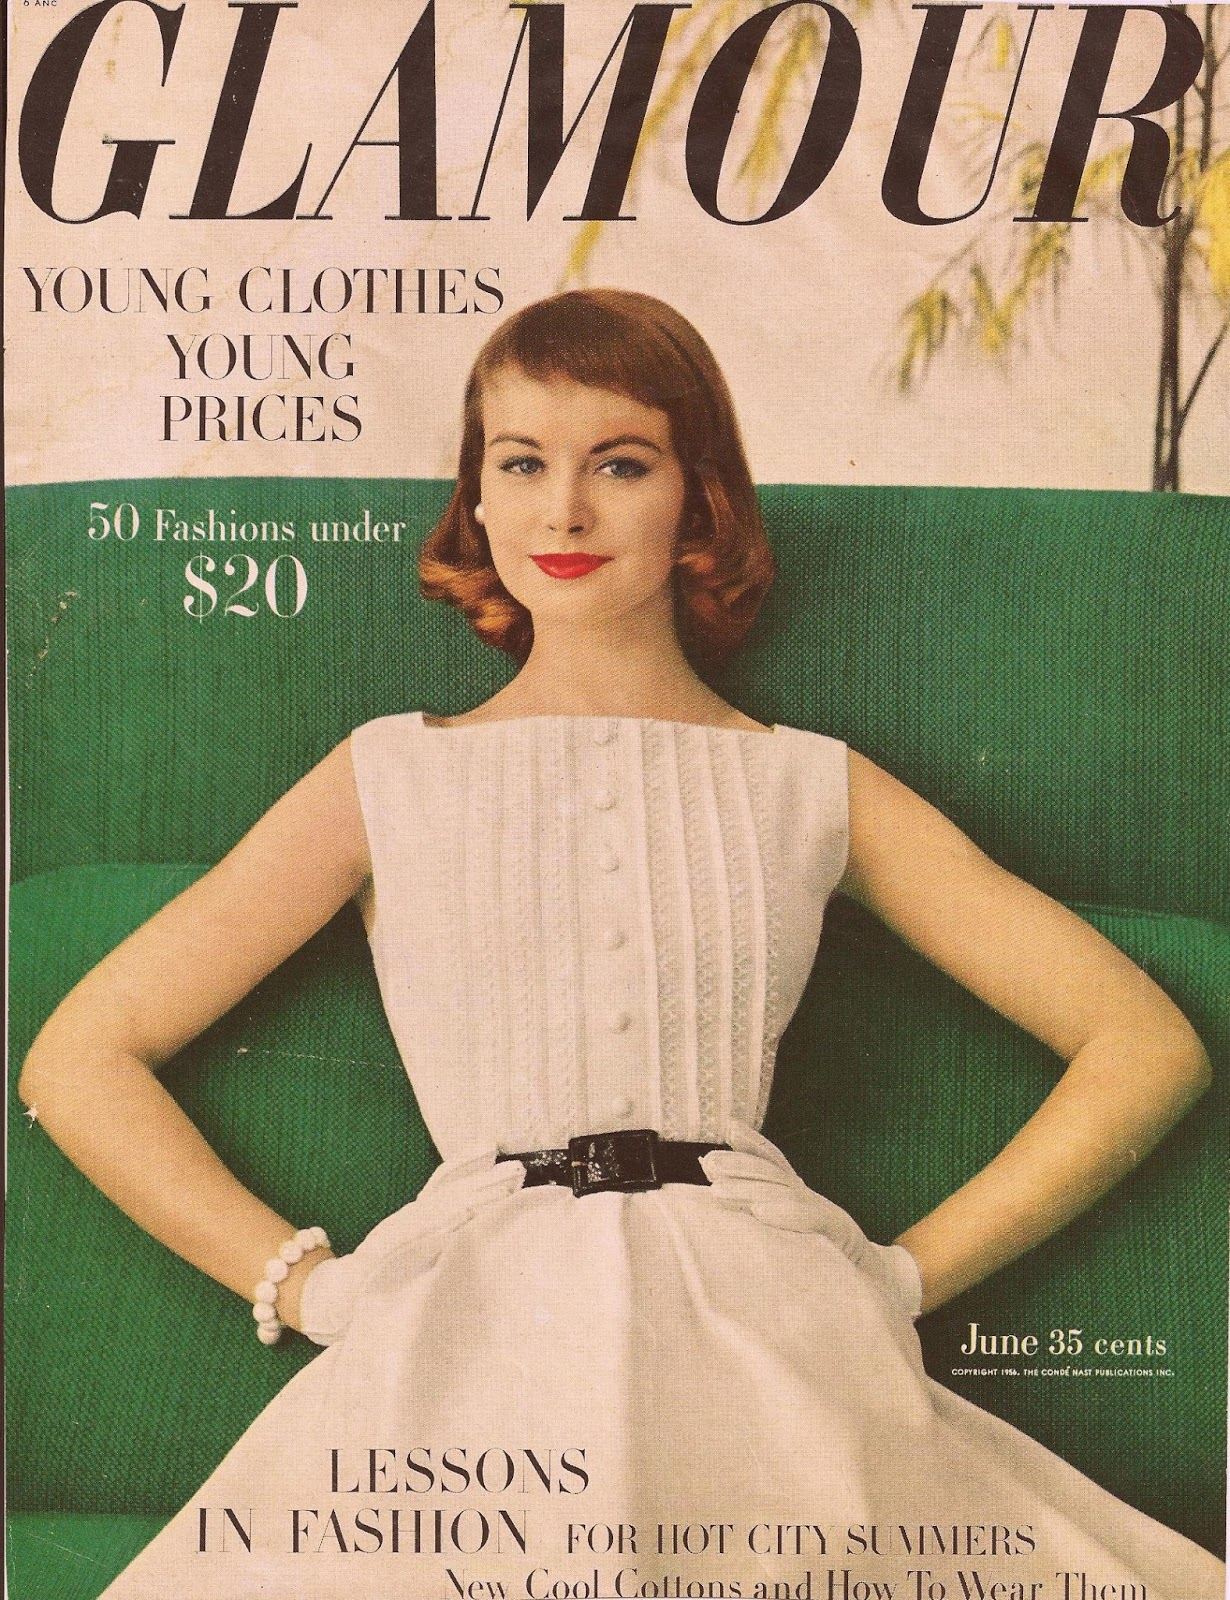 Fashion Magazine Brand Clothing: Retrospace: The Elegance Of The 50s Through Magazine Covers